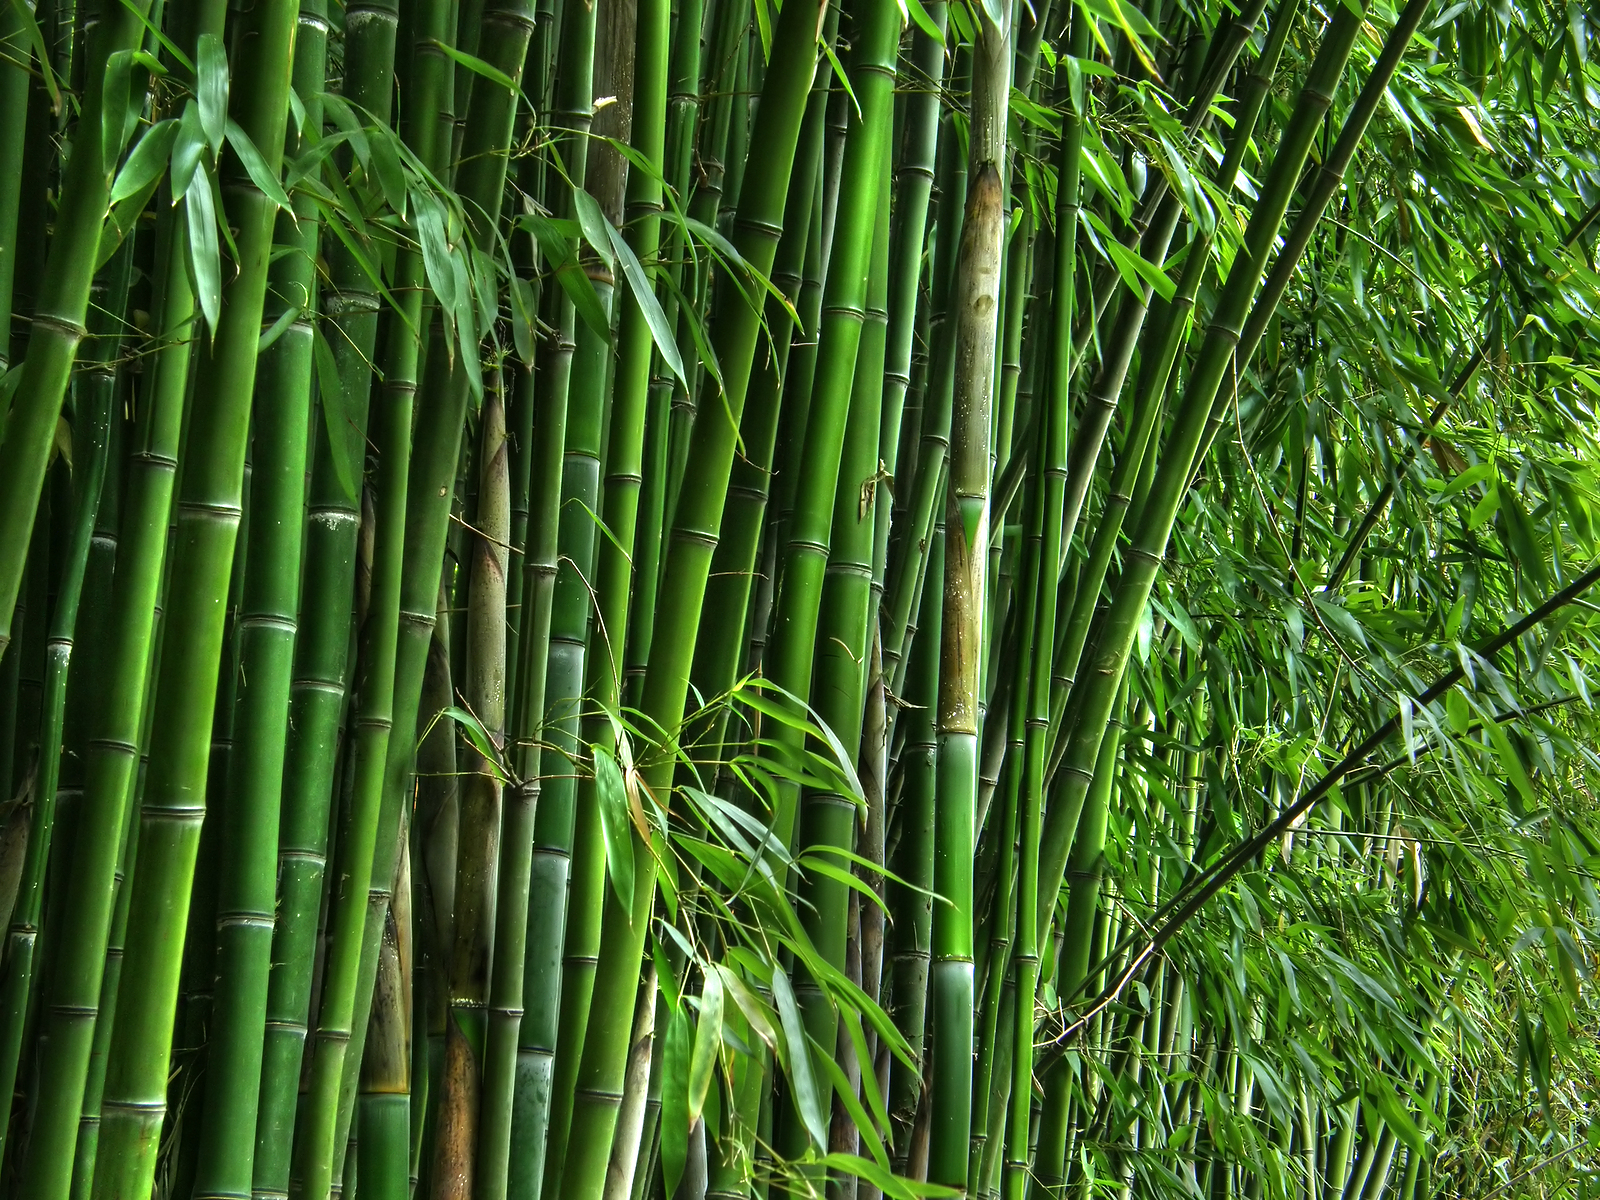 The economic value of bamboo